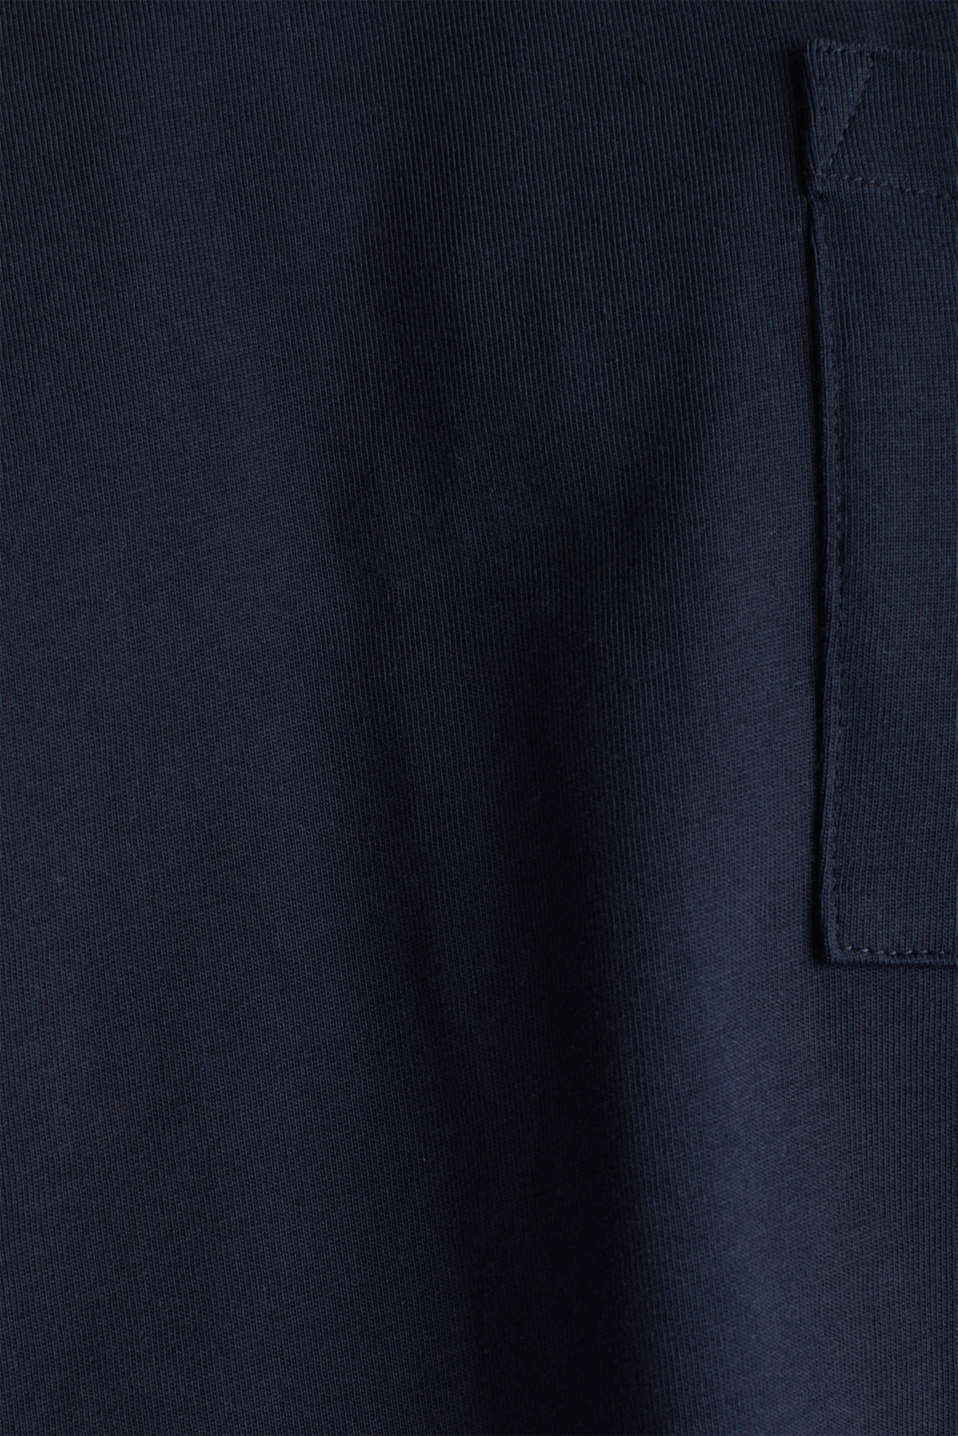 Oversized top in cotton jersey, NAVY, detail image number 4